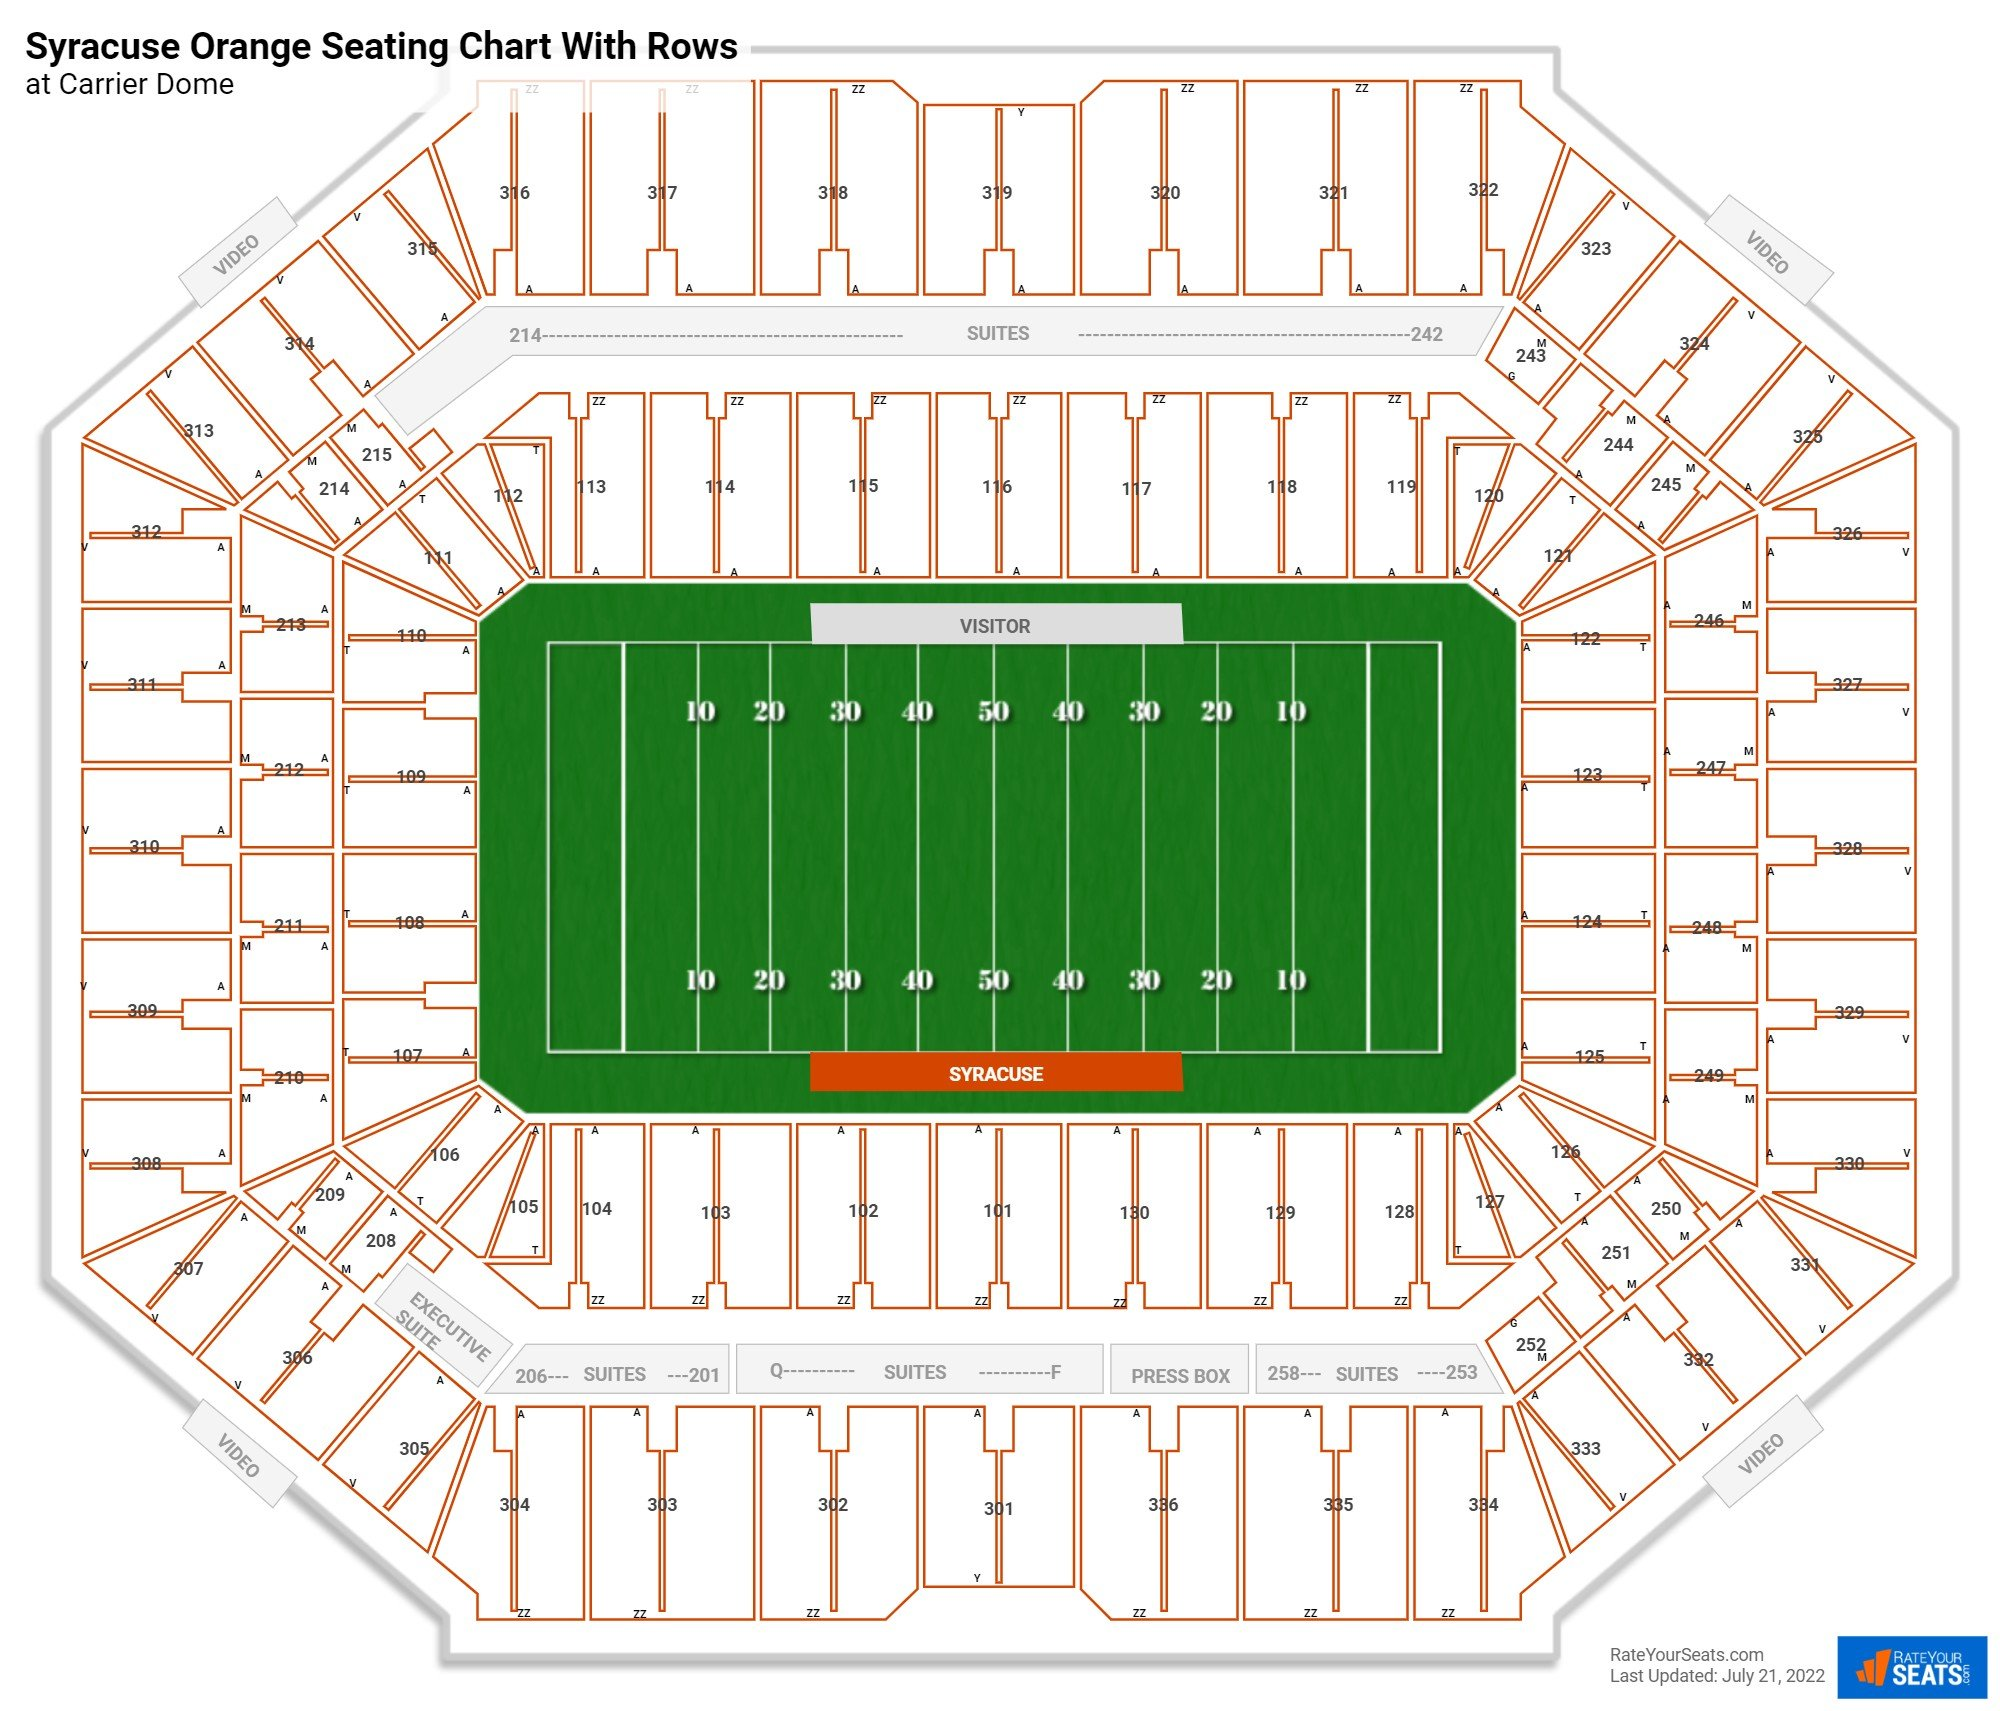 Carrier Dome seating chart with rows basketball